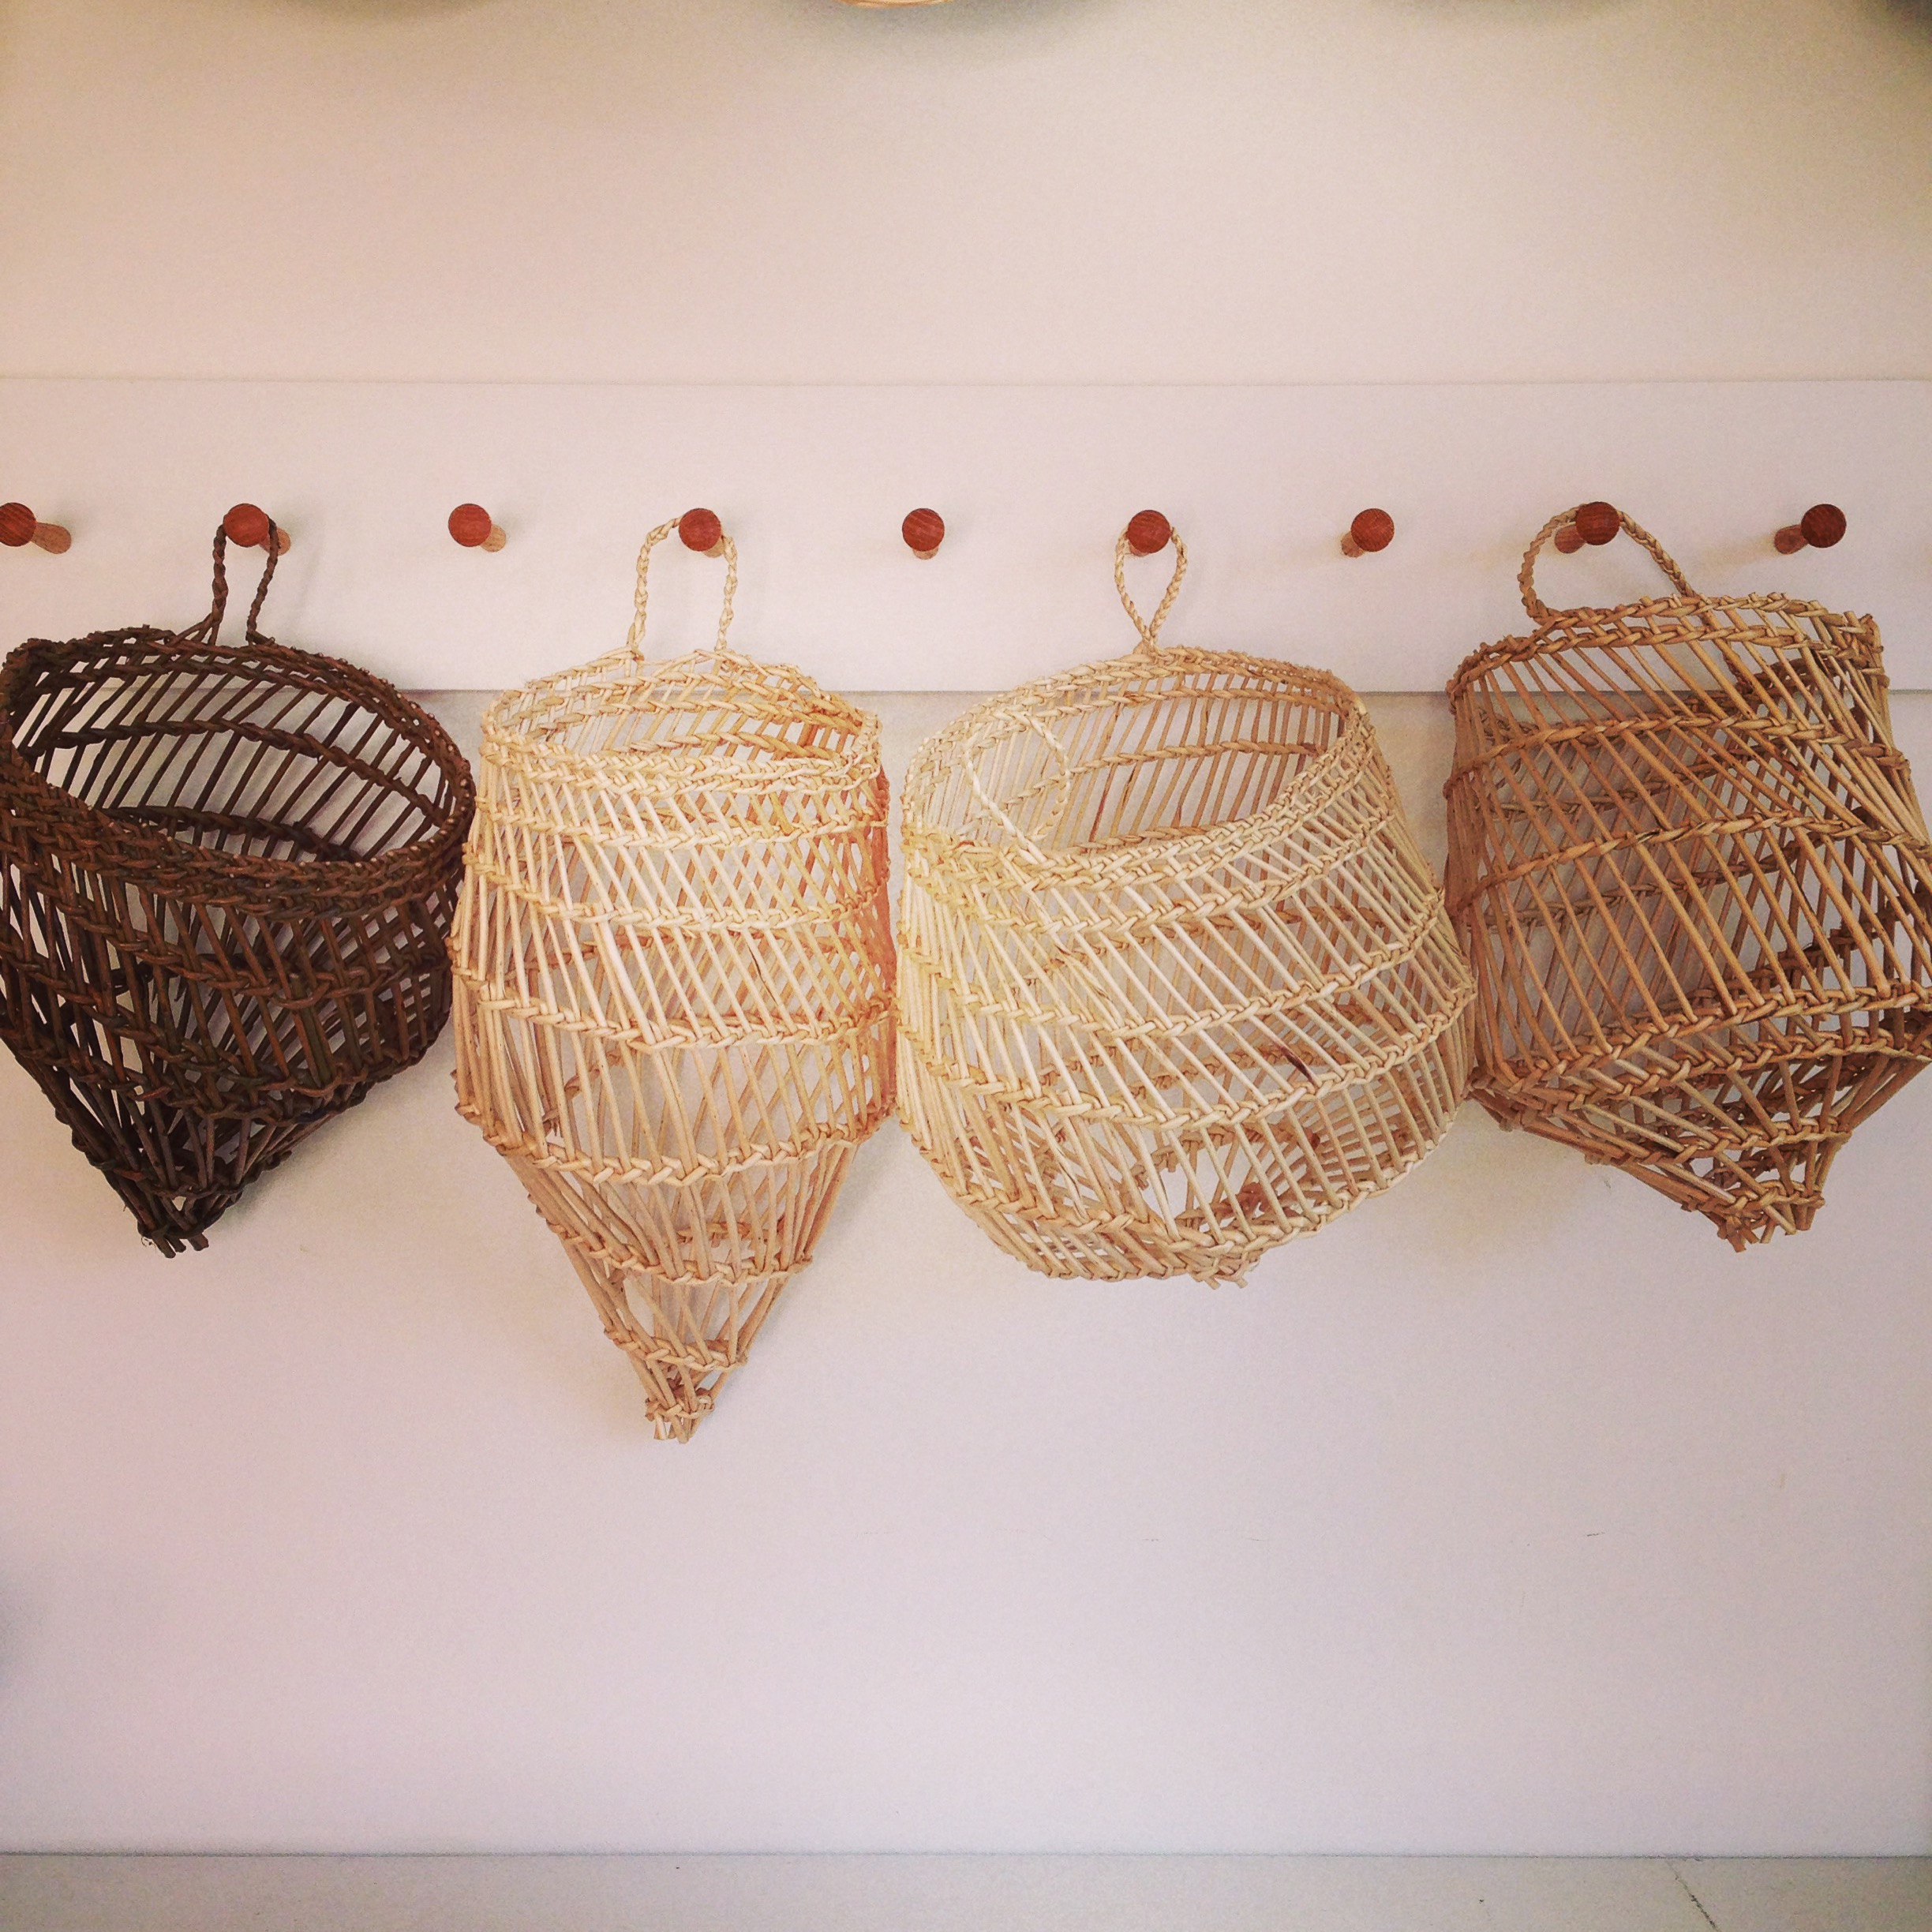 Willow wall hanging baskets - Ely Basketmaker